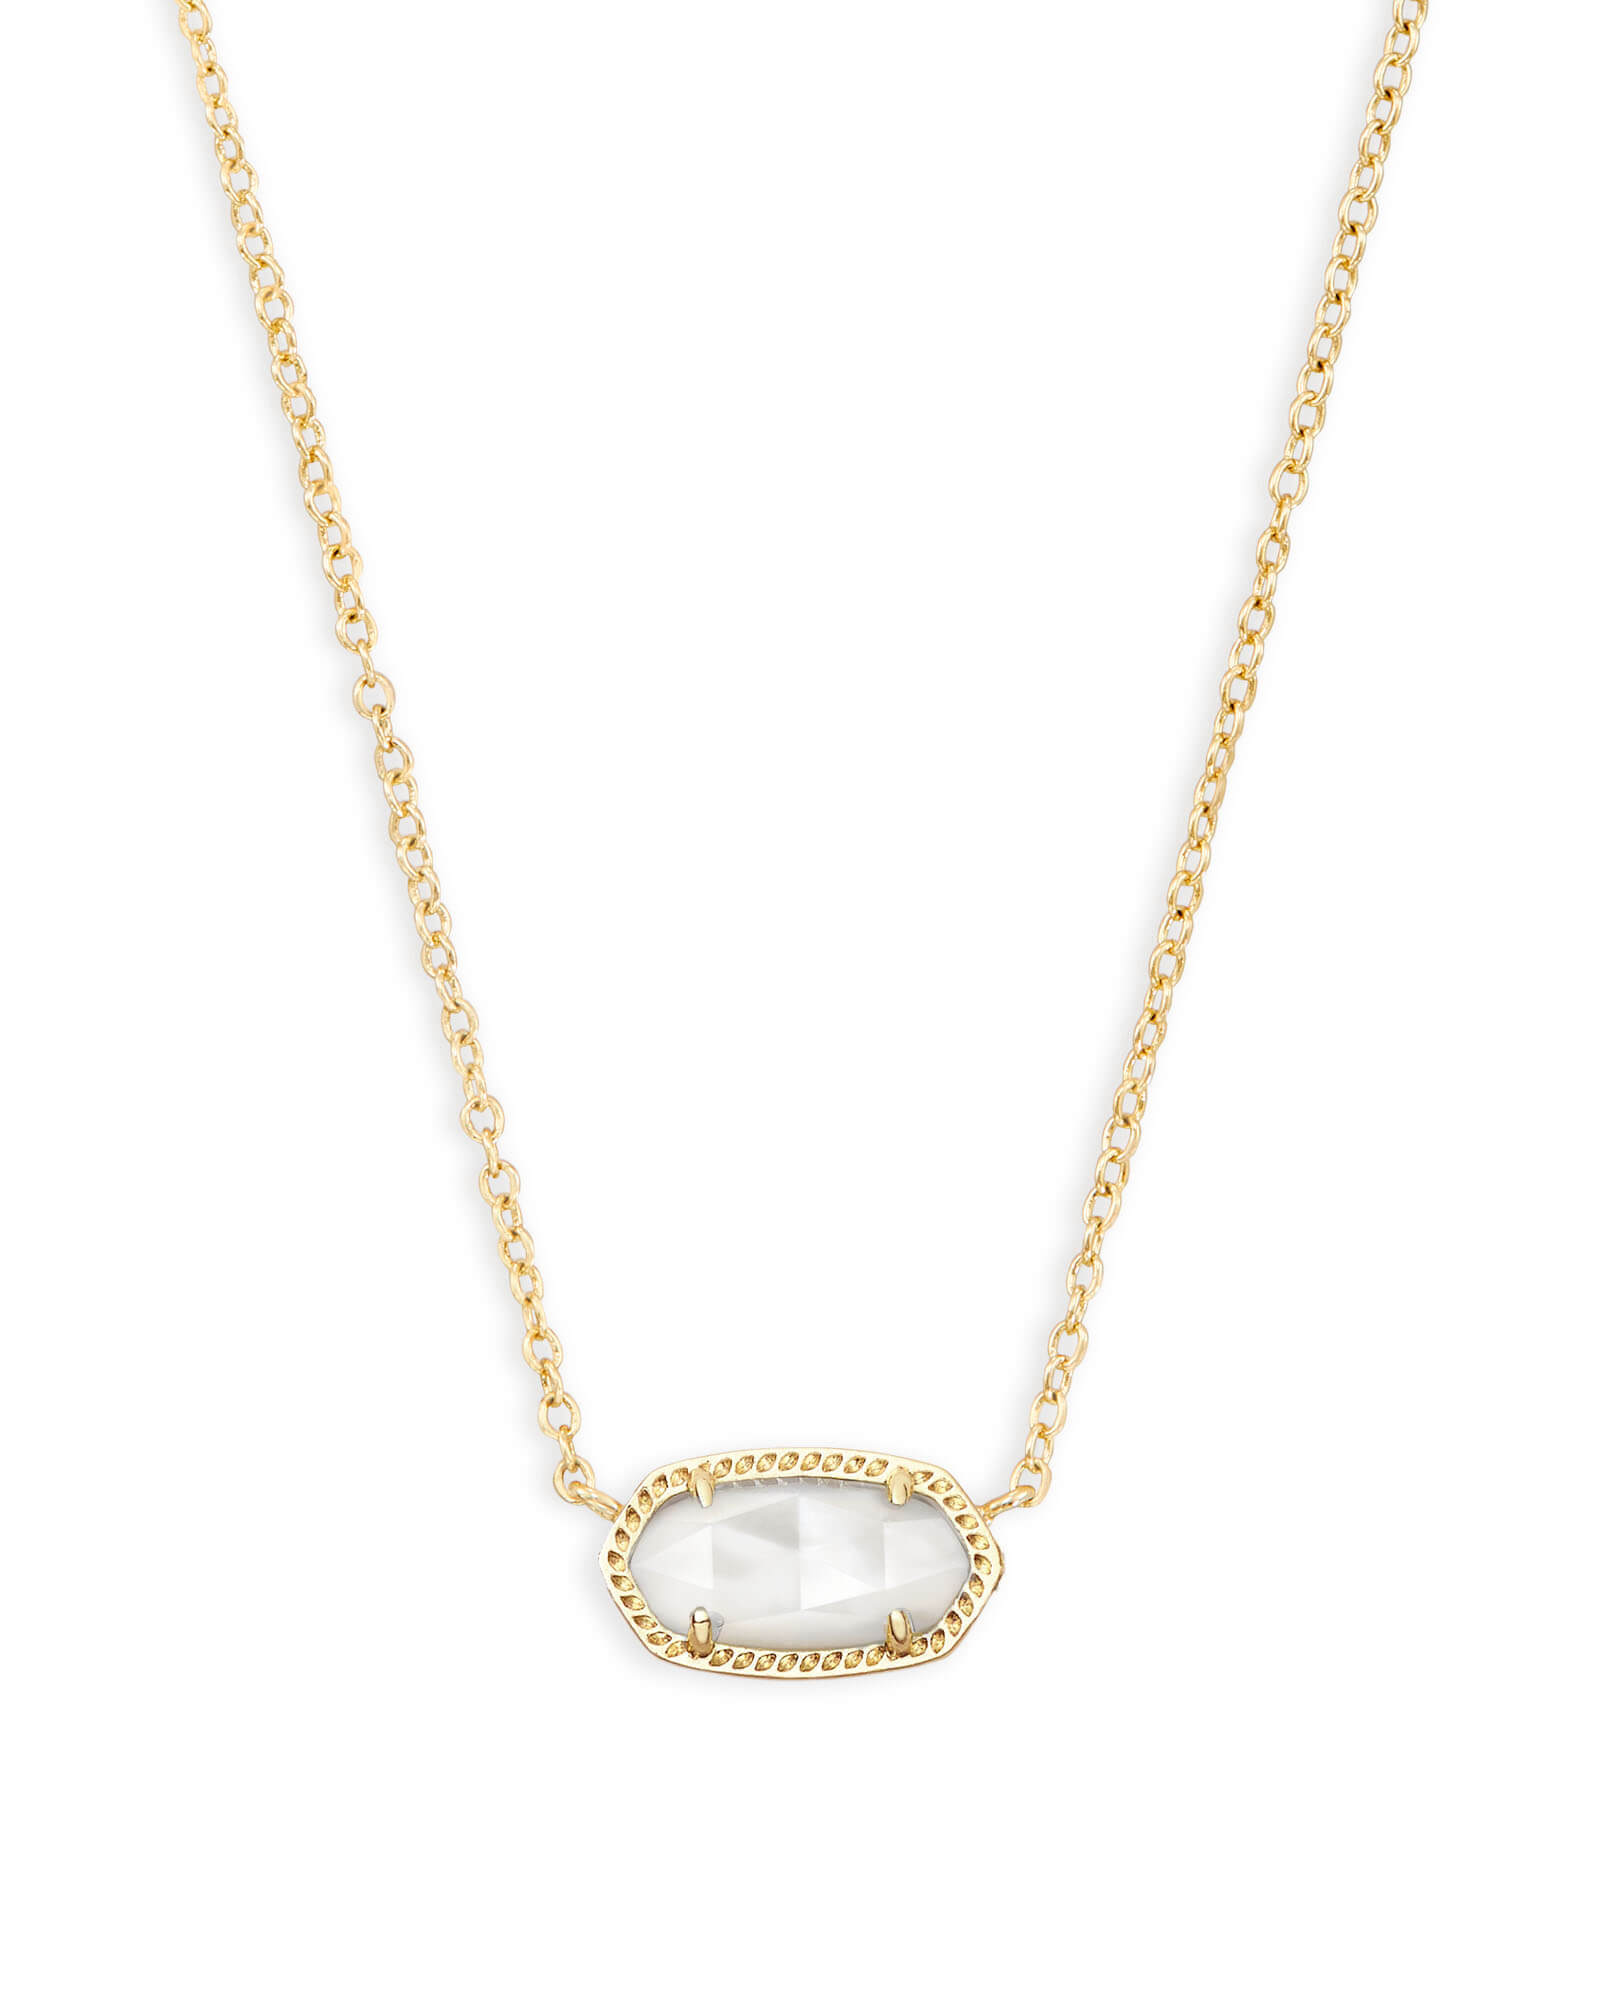 Kendra Scott Elisa Pendant Necklace in Clear and Gold Plated